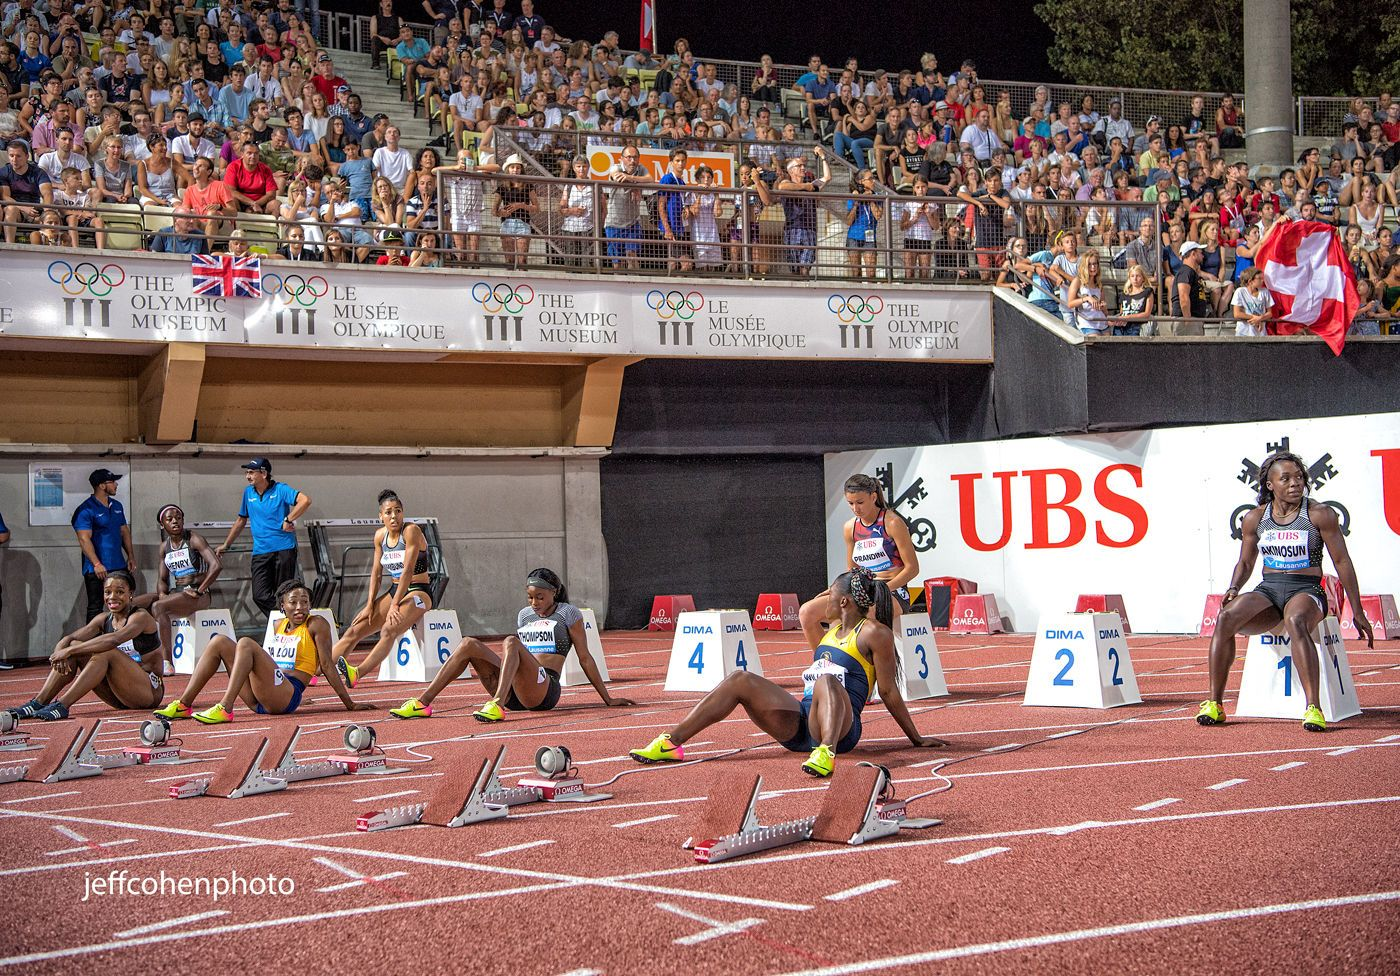 1r2016_athletissima_lausanne_100mw_wait_jeff_cohen_photo_255_web.jpg